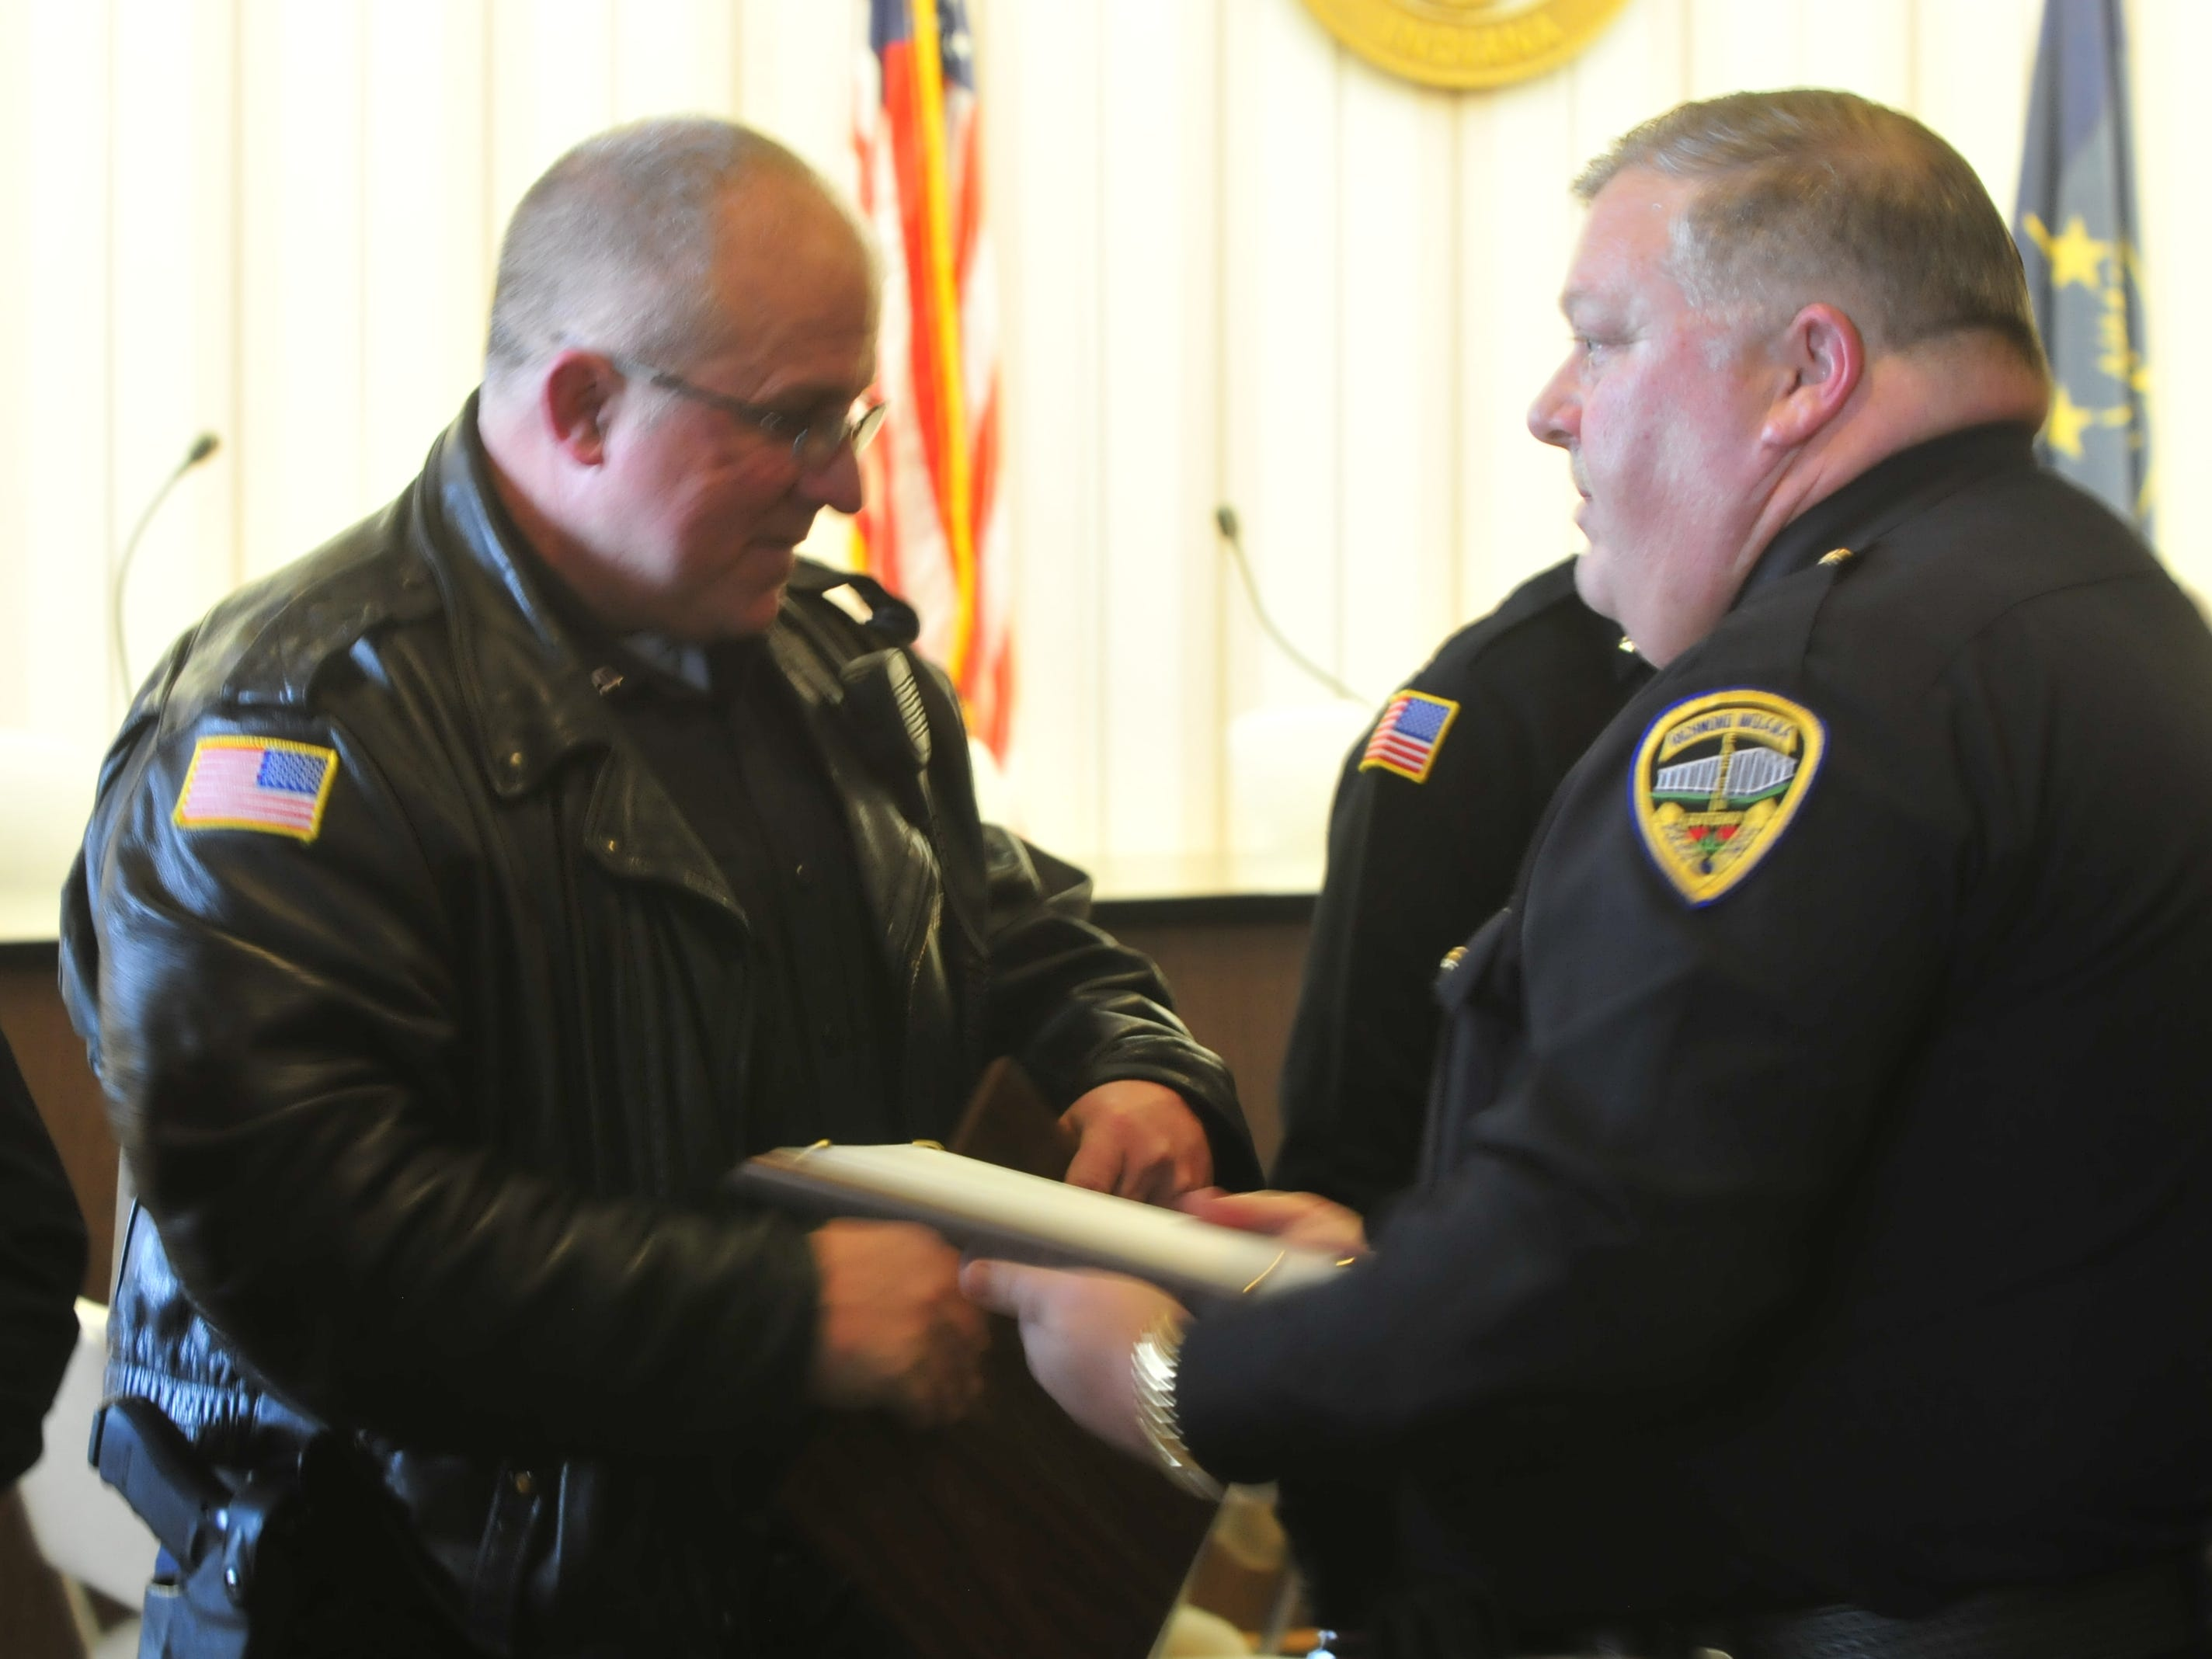 Officer Randy Ruhl receives a Police Star award from Major Mike Britt on Monday.